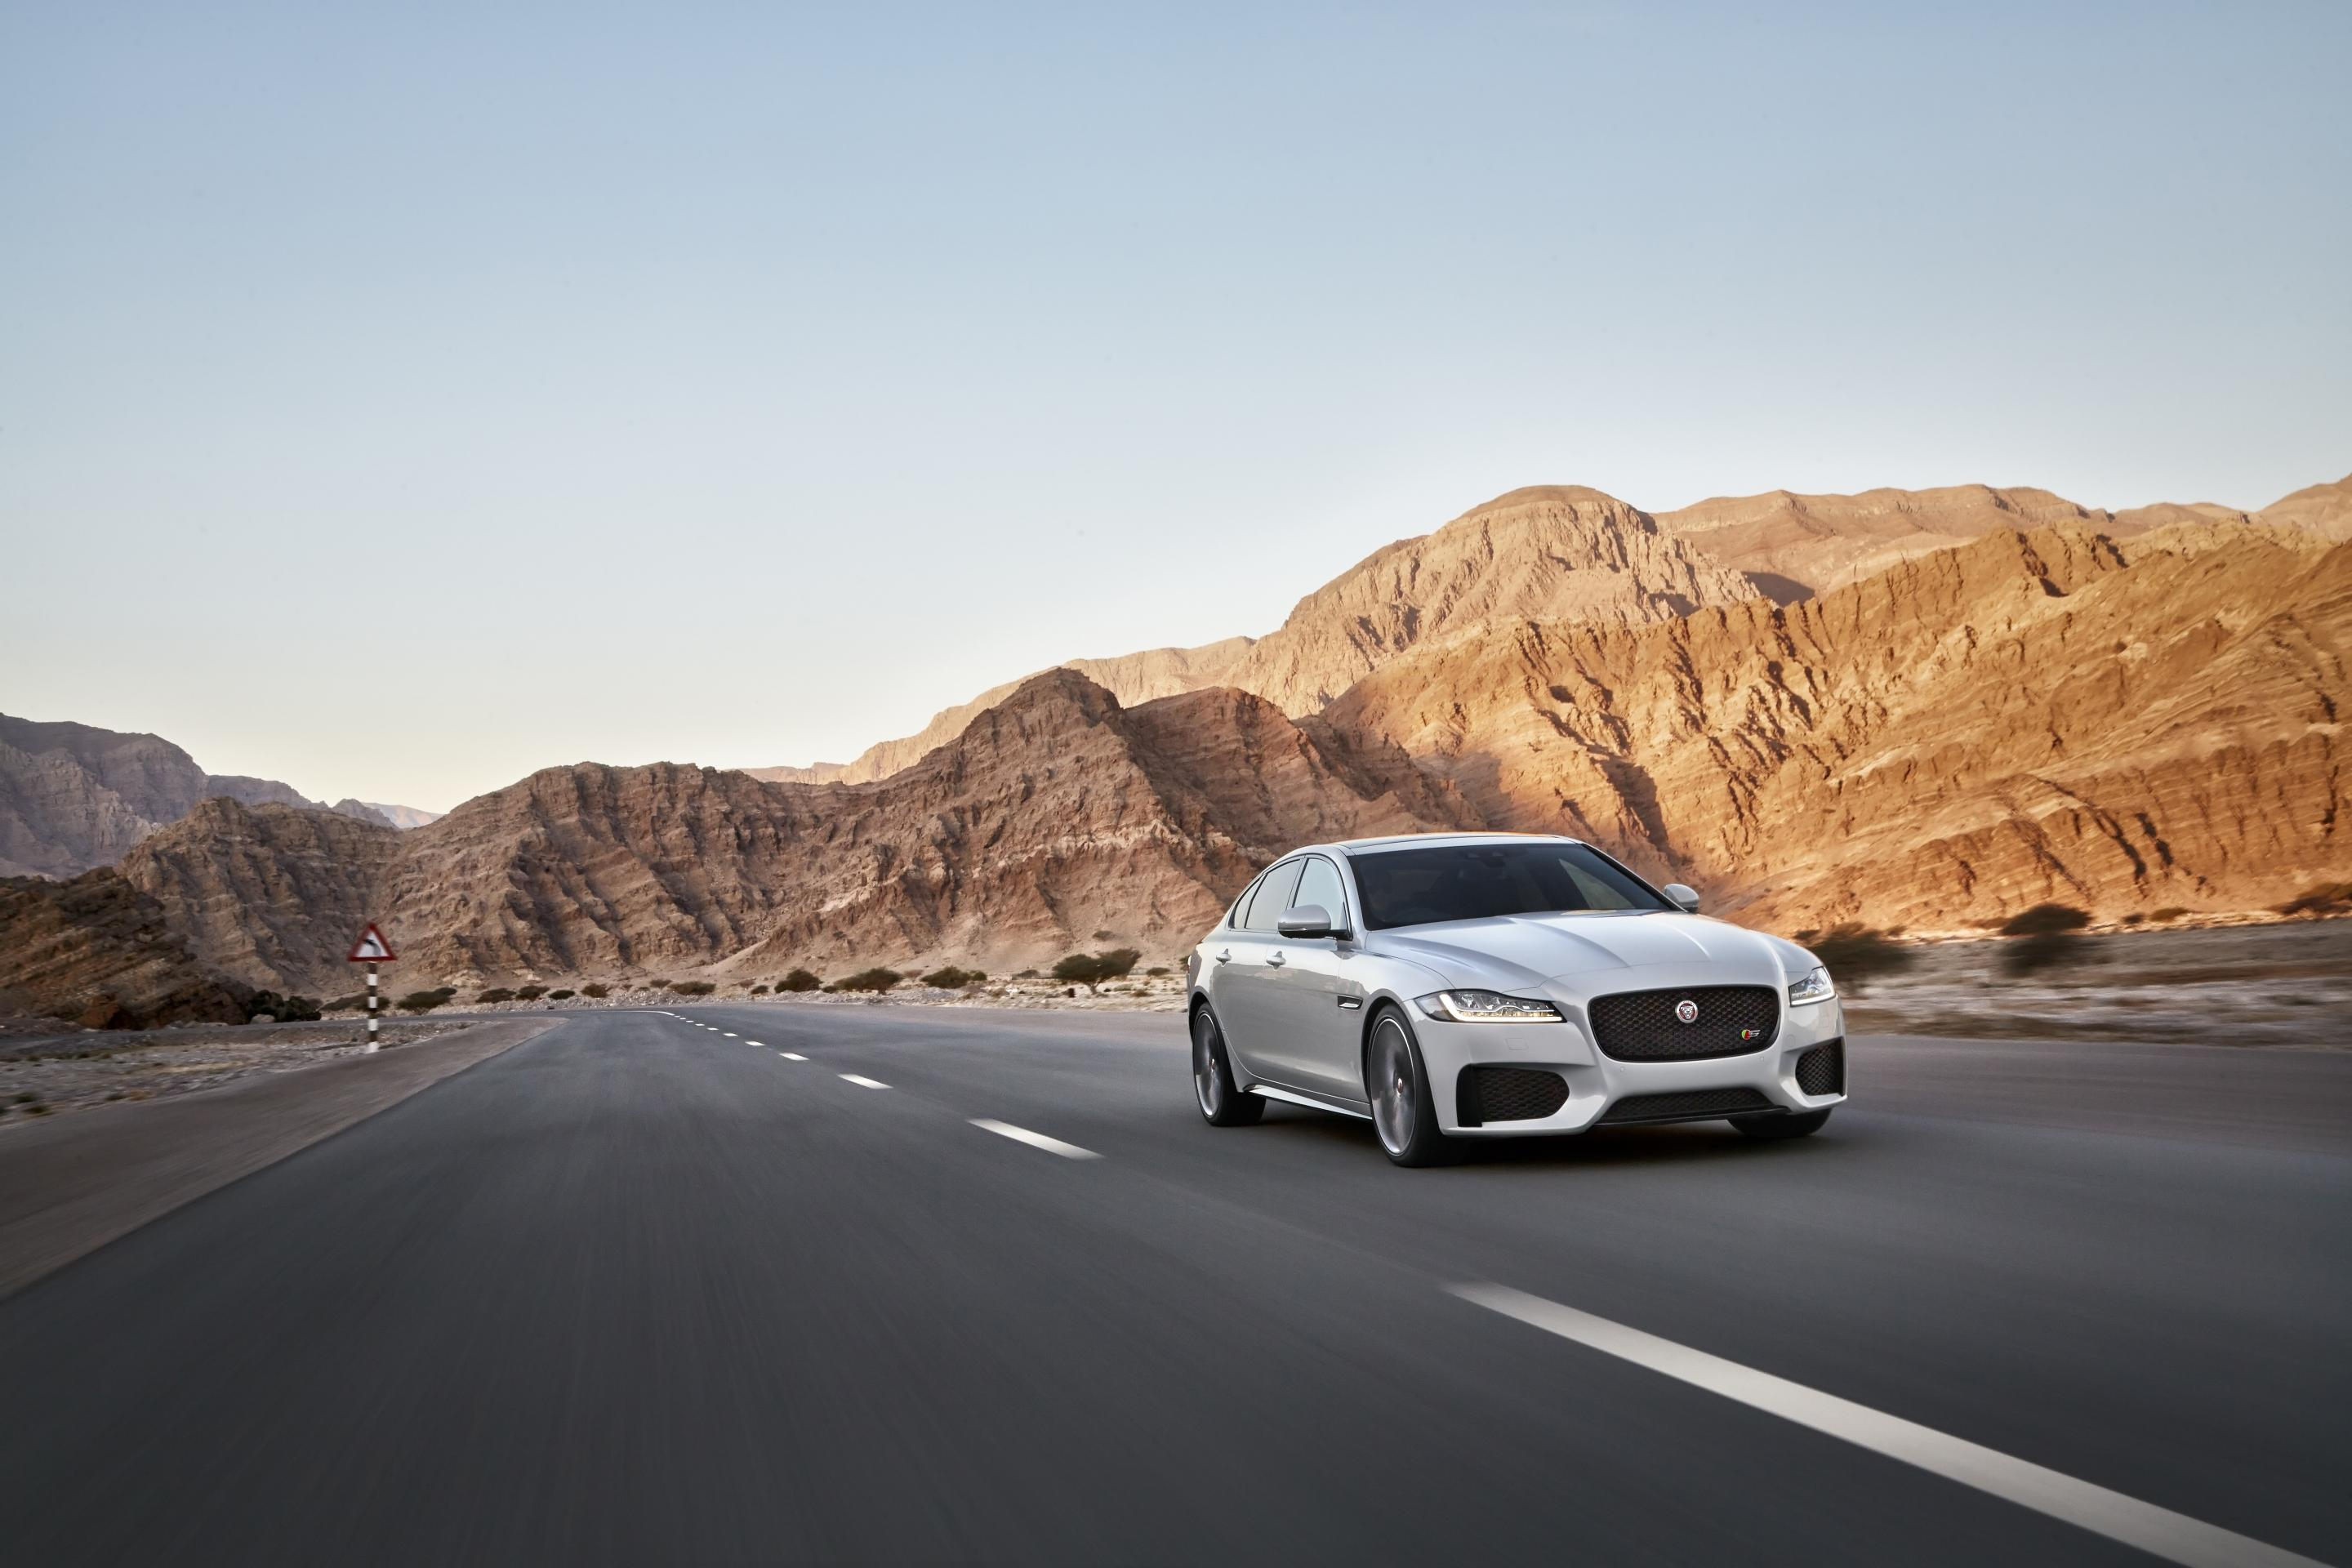 xf new window moibibiki jaguar image pictures price awd open xj for sale modifications